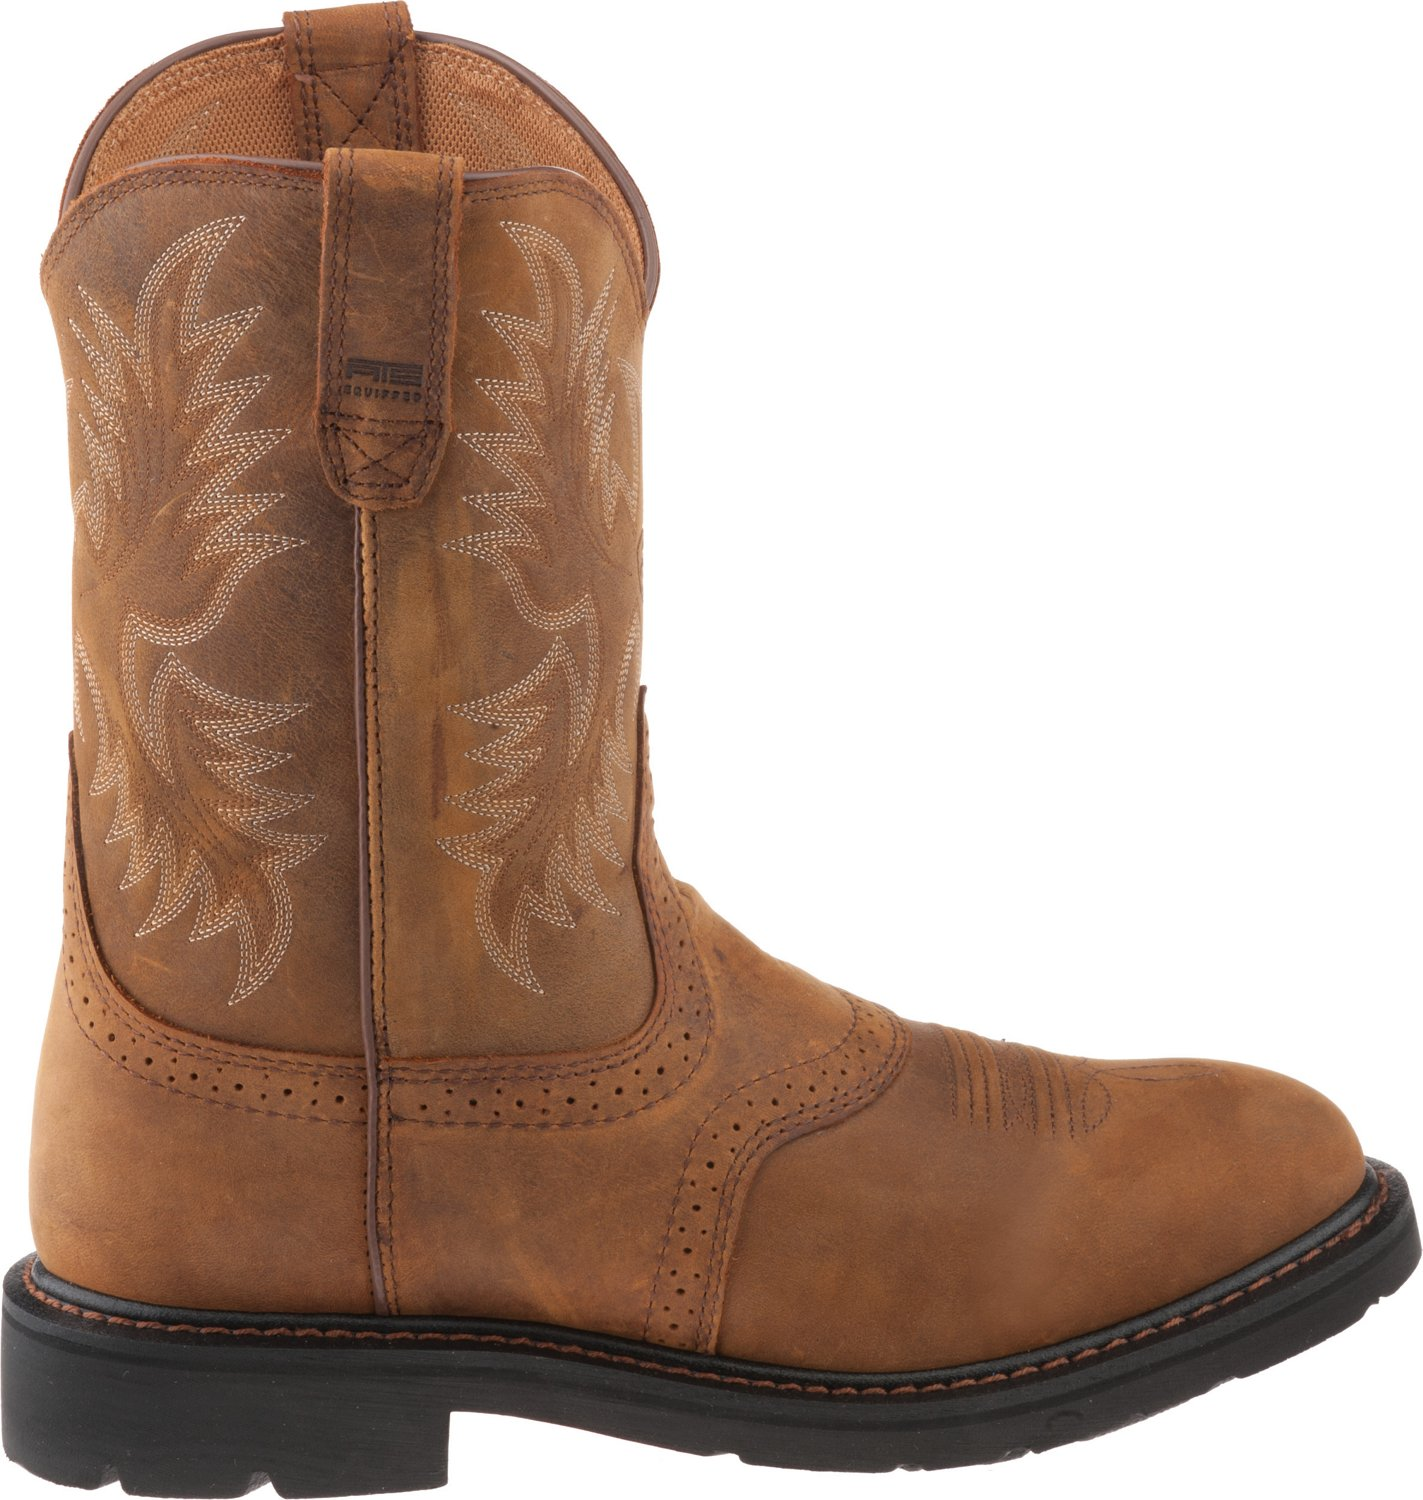 b99b9ec9e78 Display product reviews for Ariat Men s Sierra Saddle Work Boots